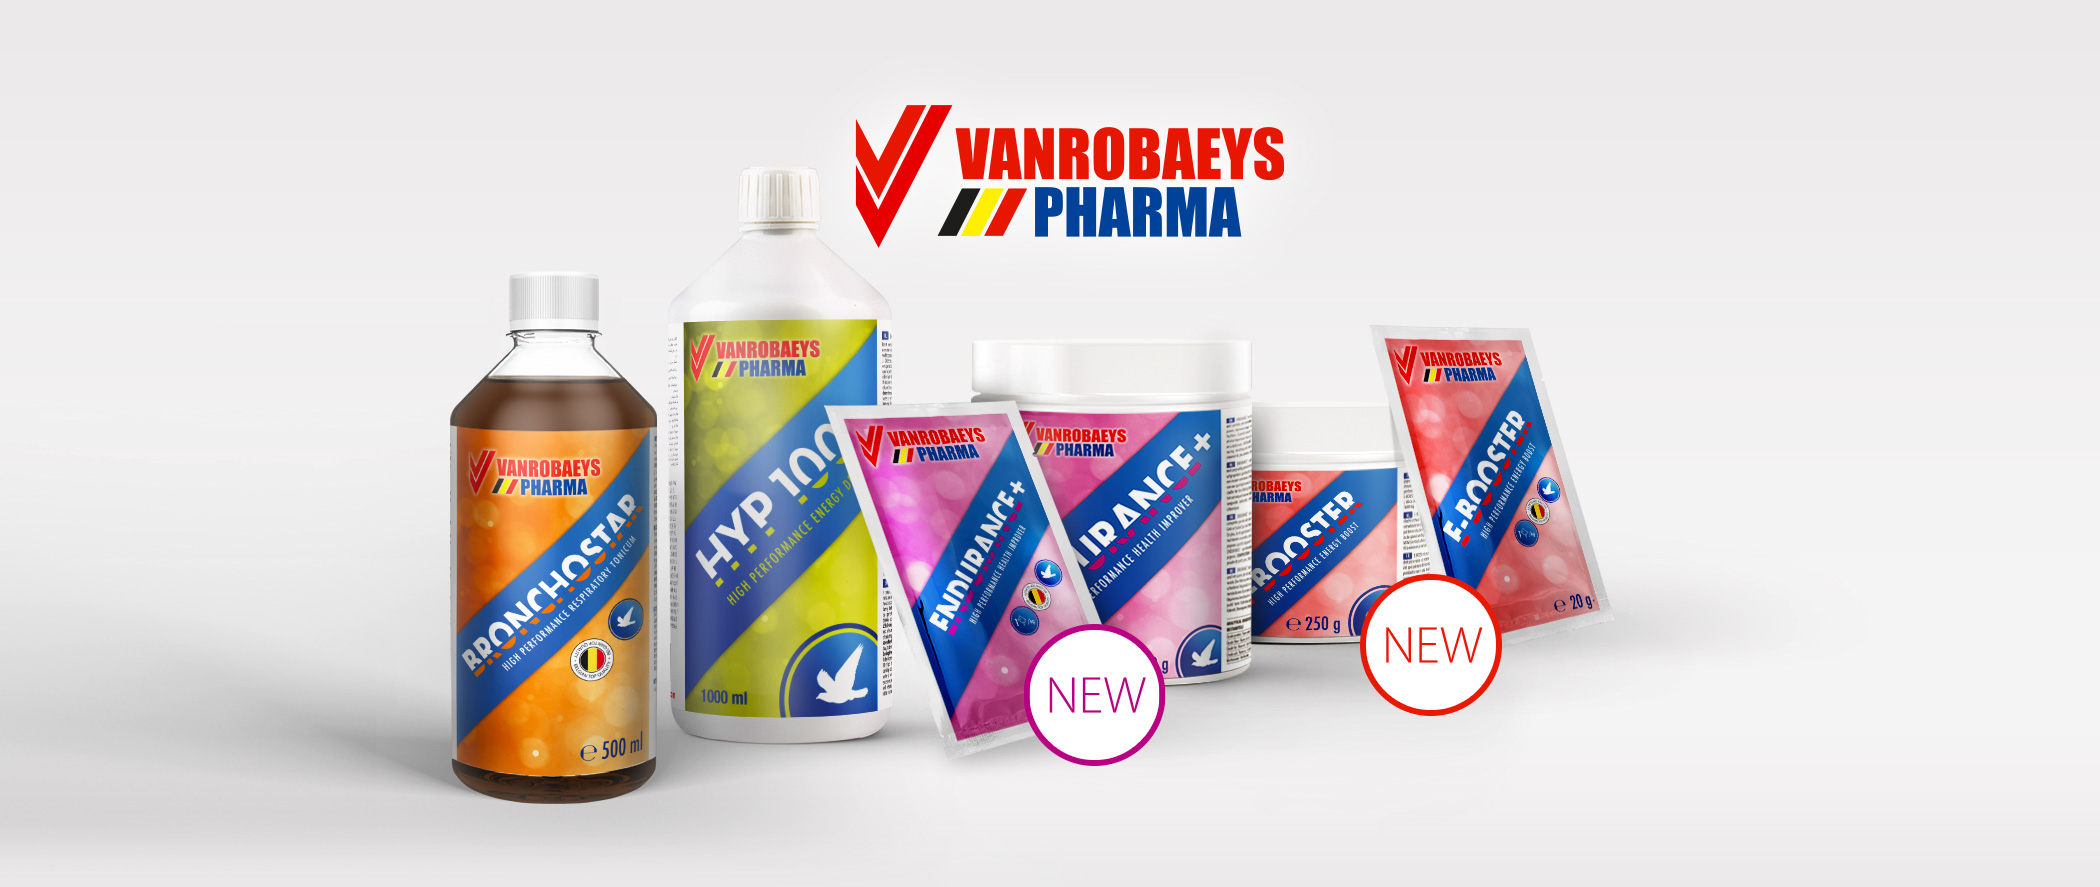 Vanrobaeys Pharma